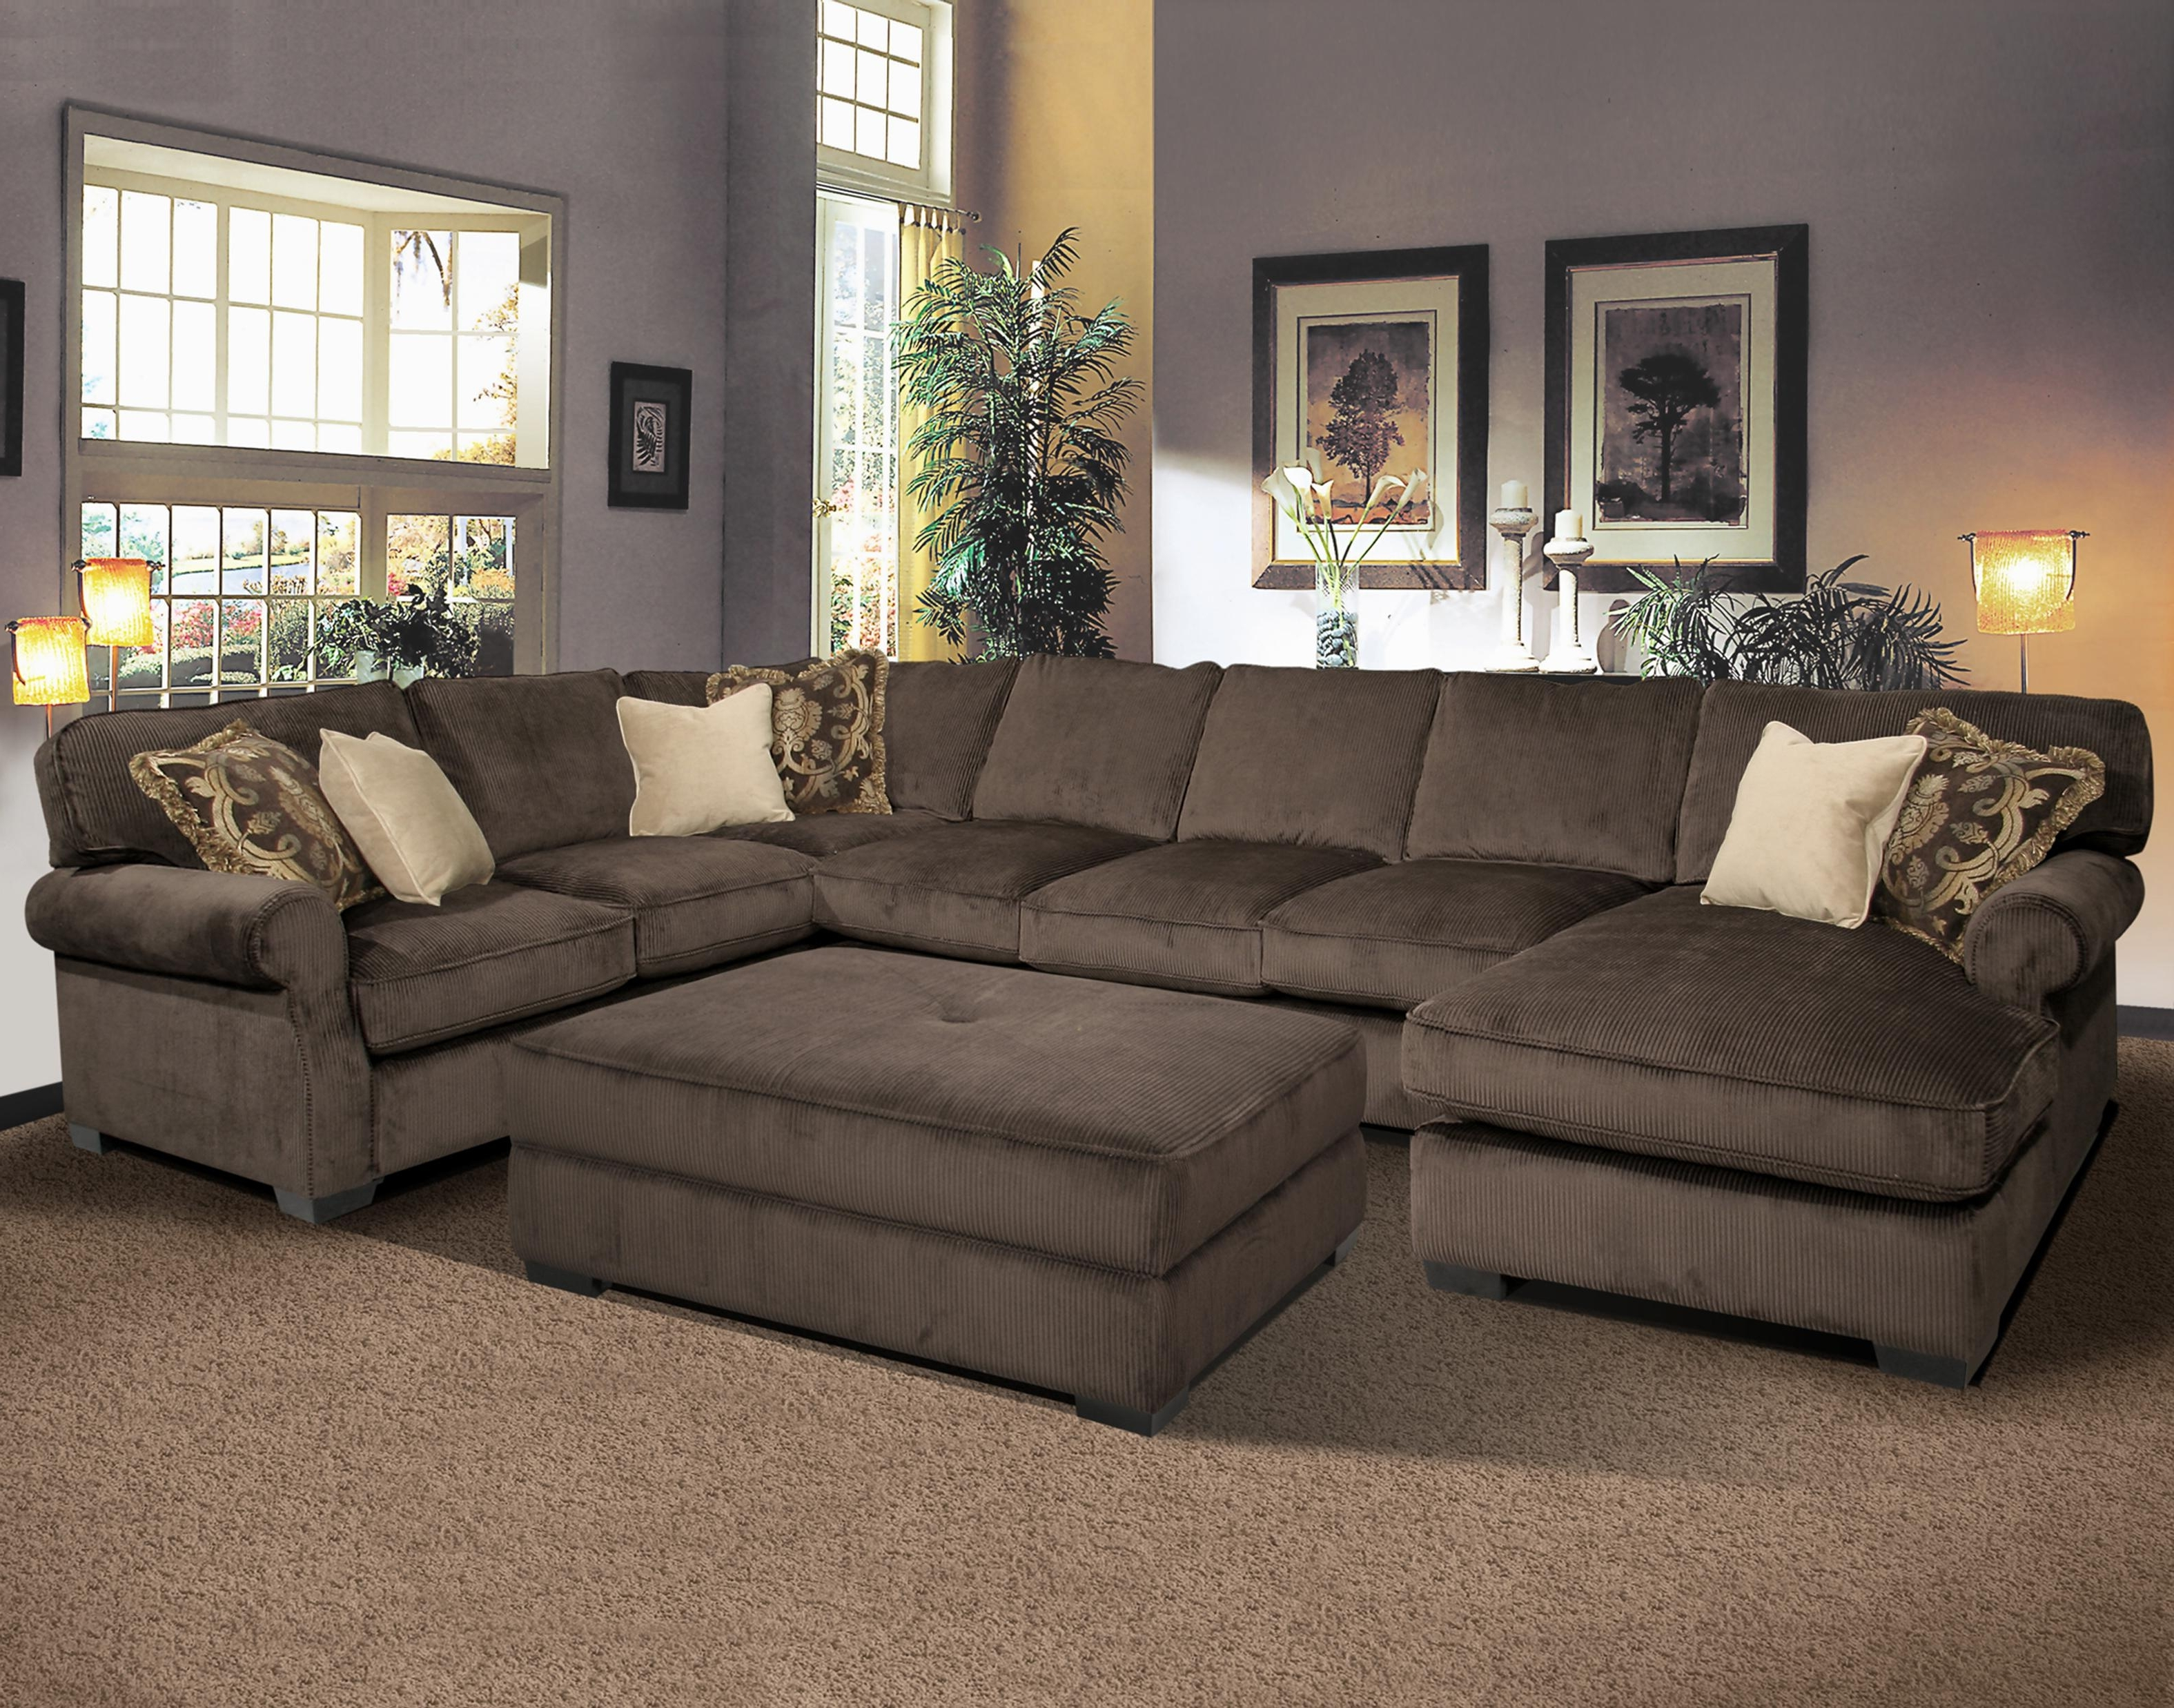 Oversized Sectionals With Chaise In Newest Furniture: Interesting Living Room Interior Using Large Sectional (View 5 of 15)